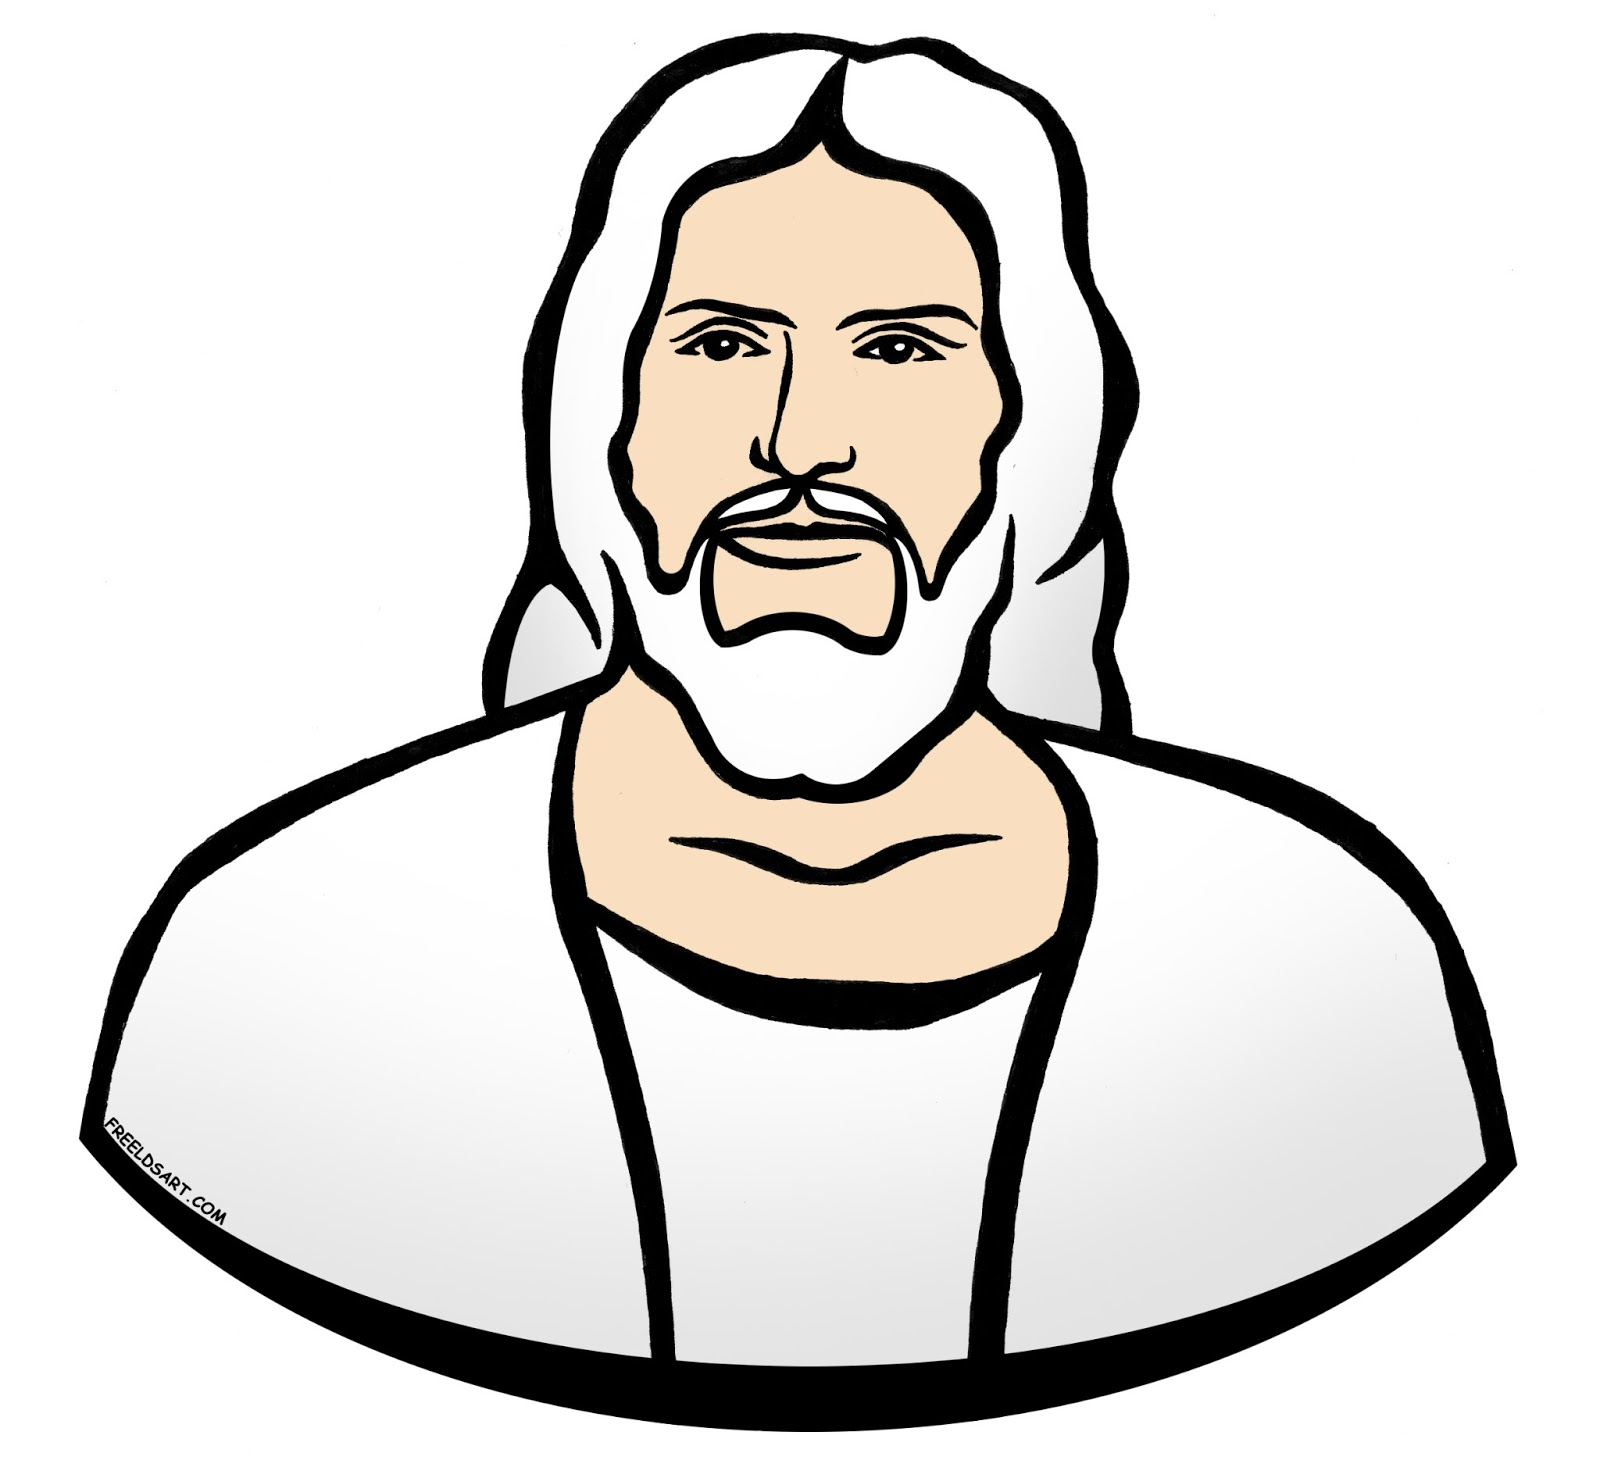 God the father clipart picture royalty free library Cliparts Heavenly Father - Cliparts Zone picture royalty free library